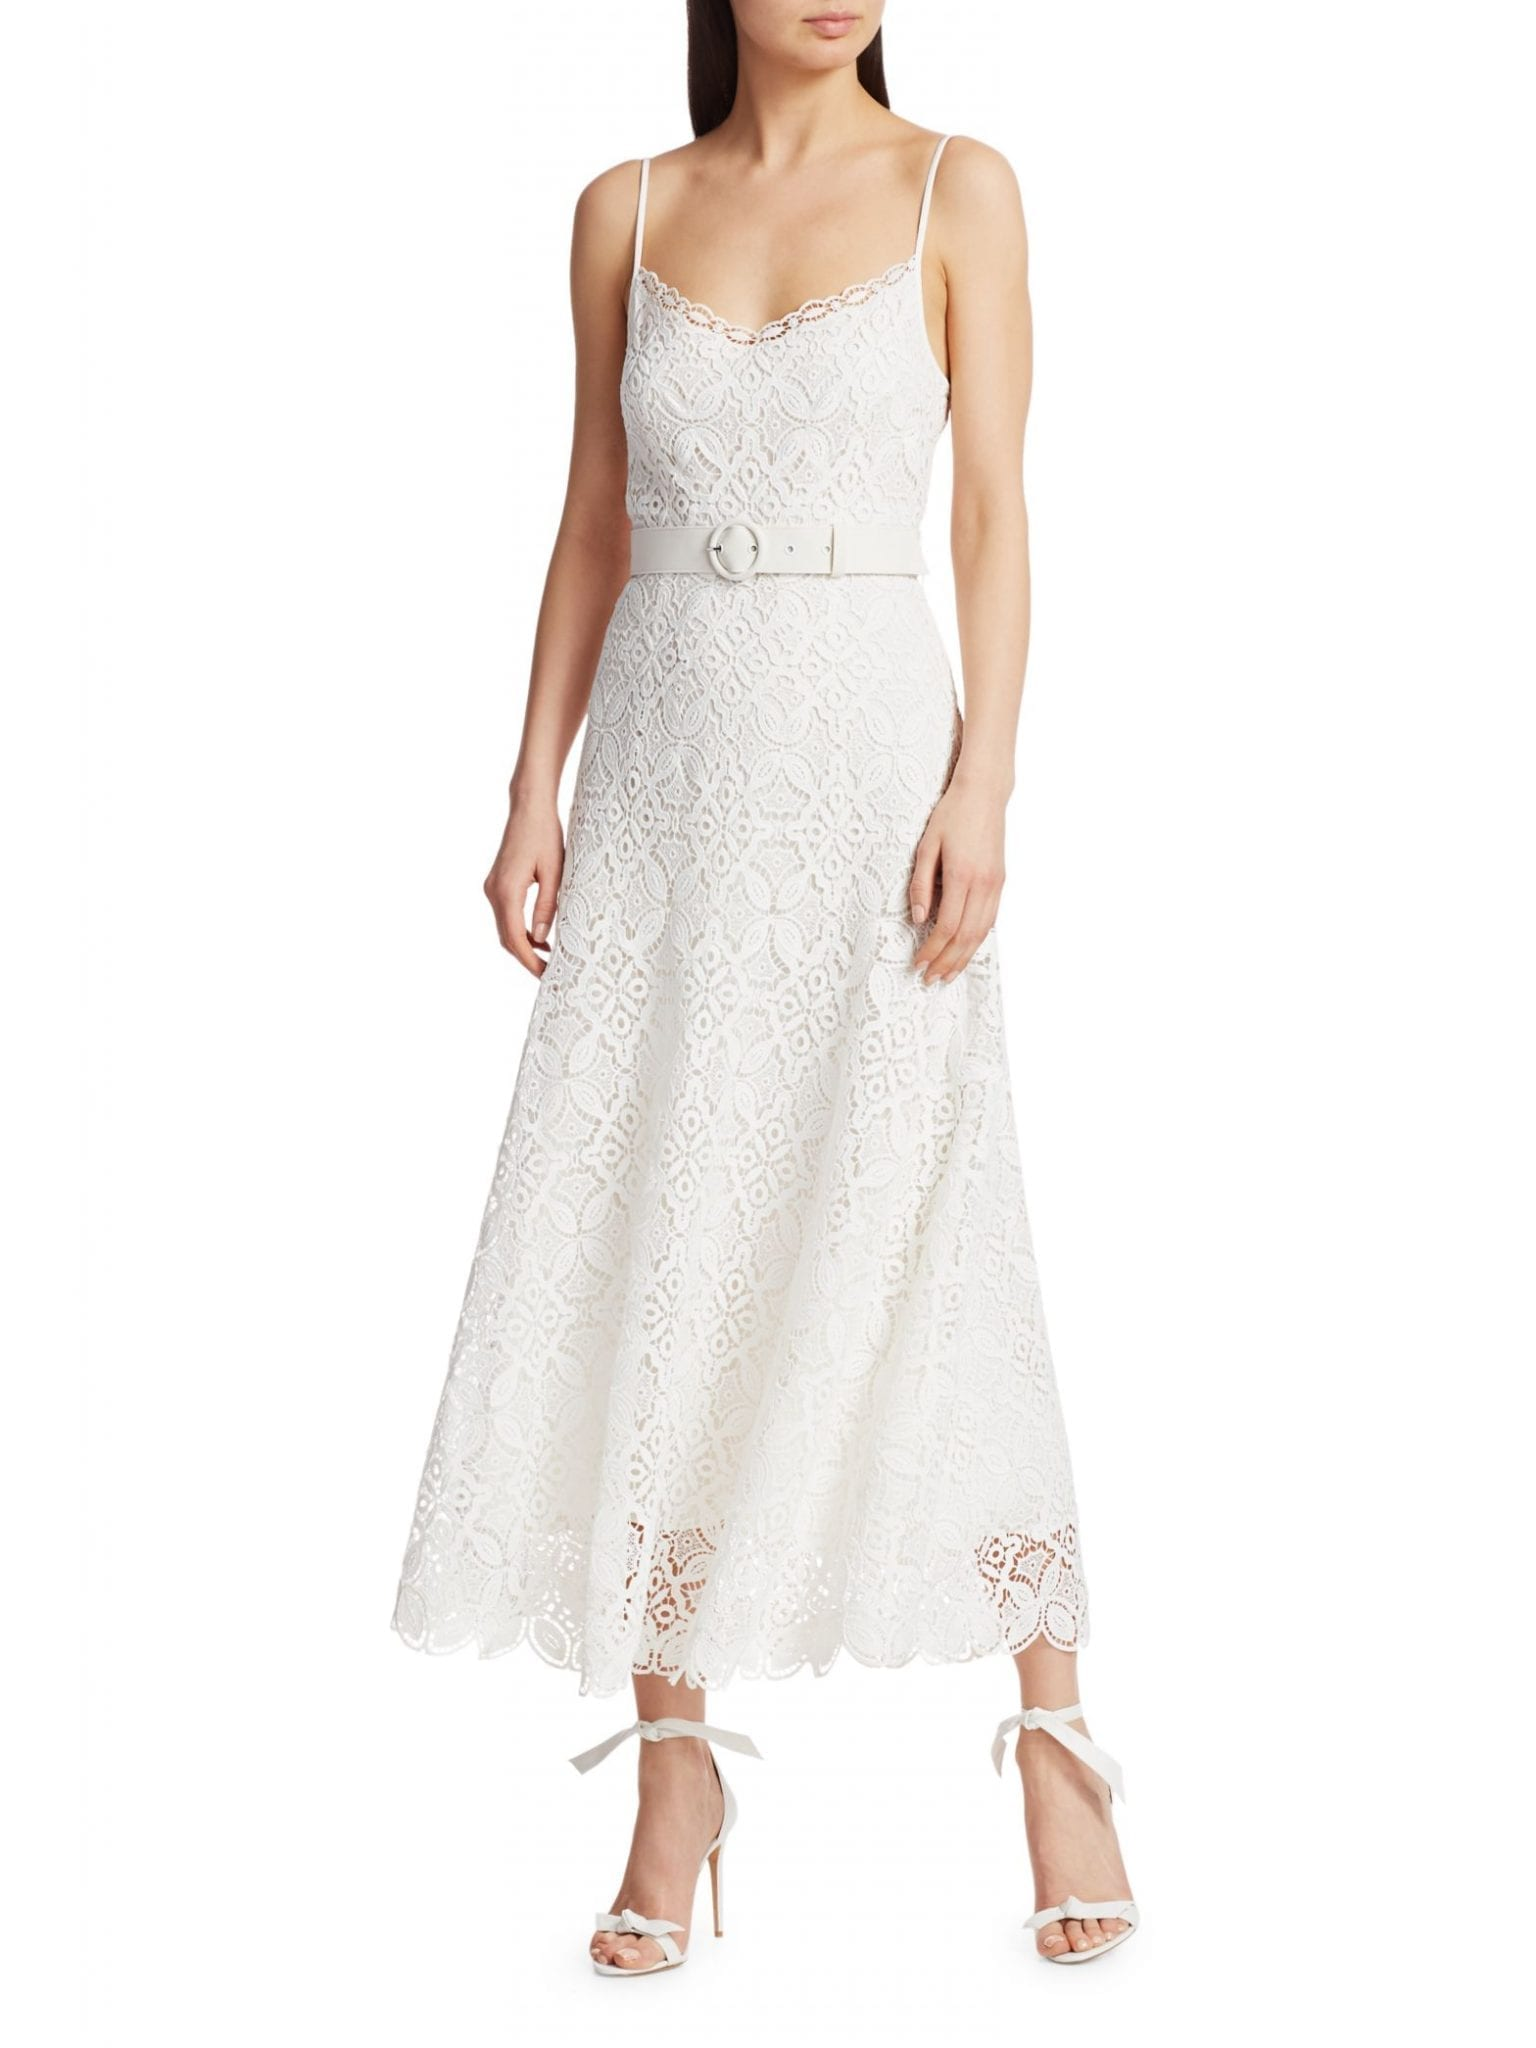 JONATHAN SIMKHAI Savannah Guipure Lace Dress